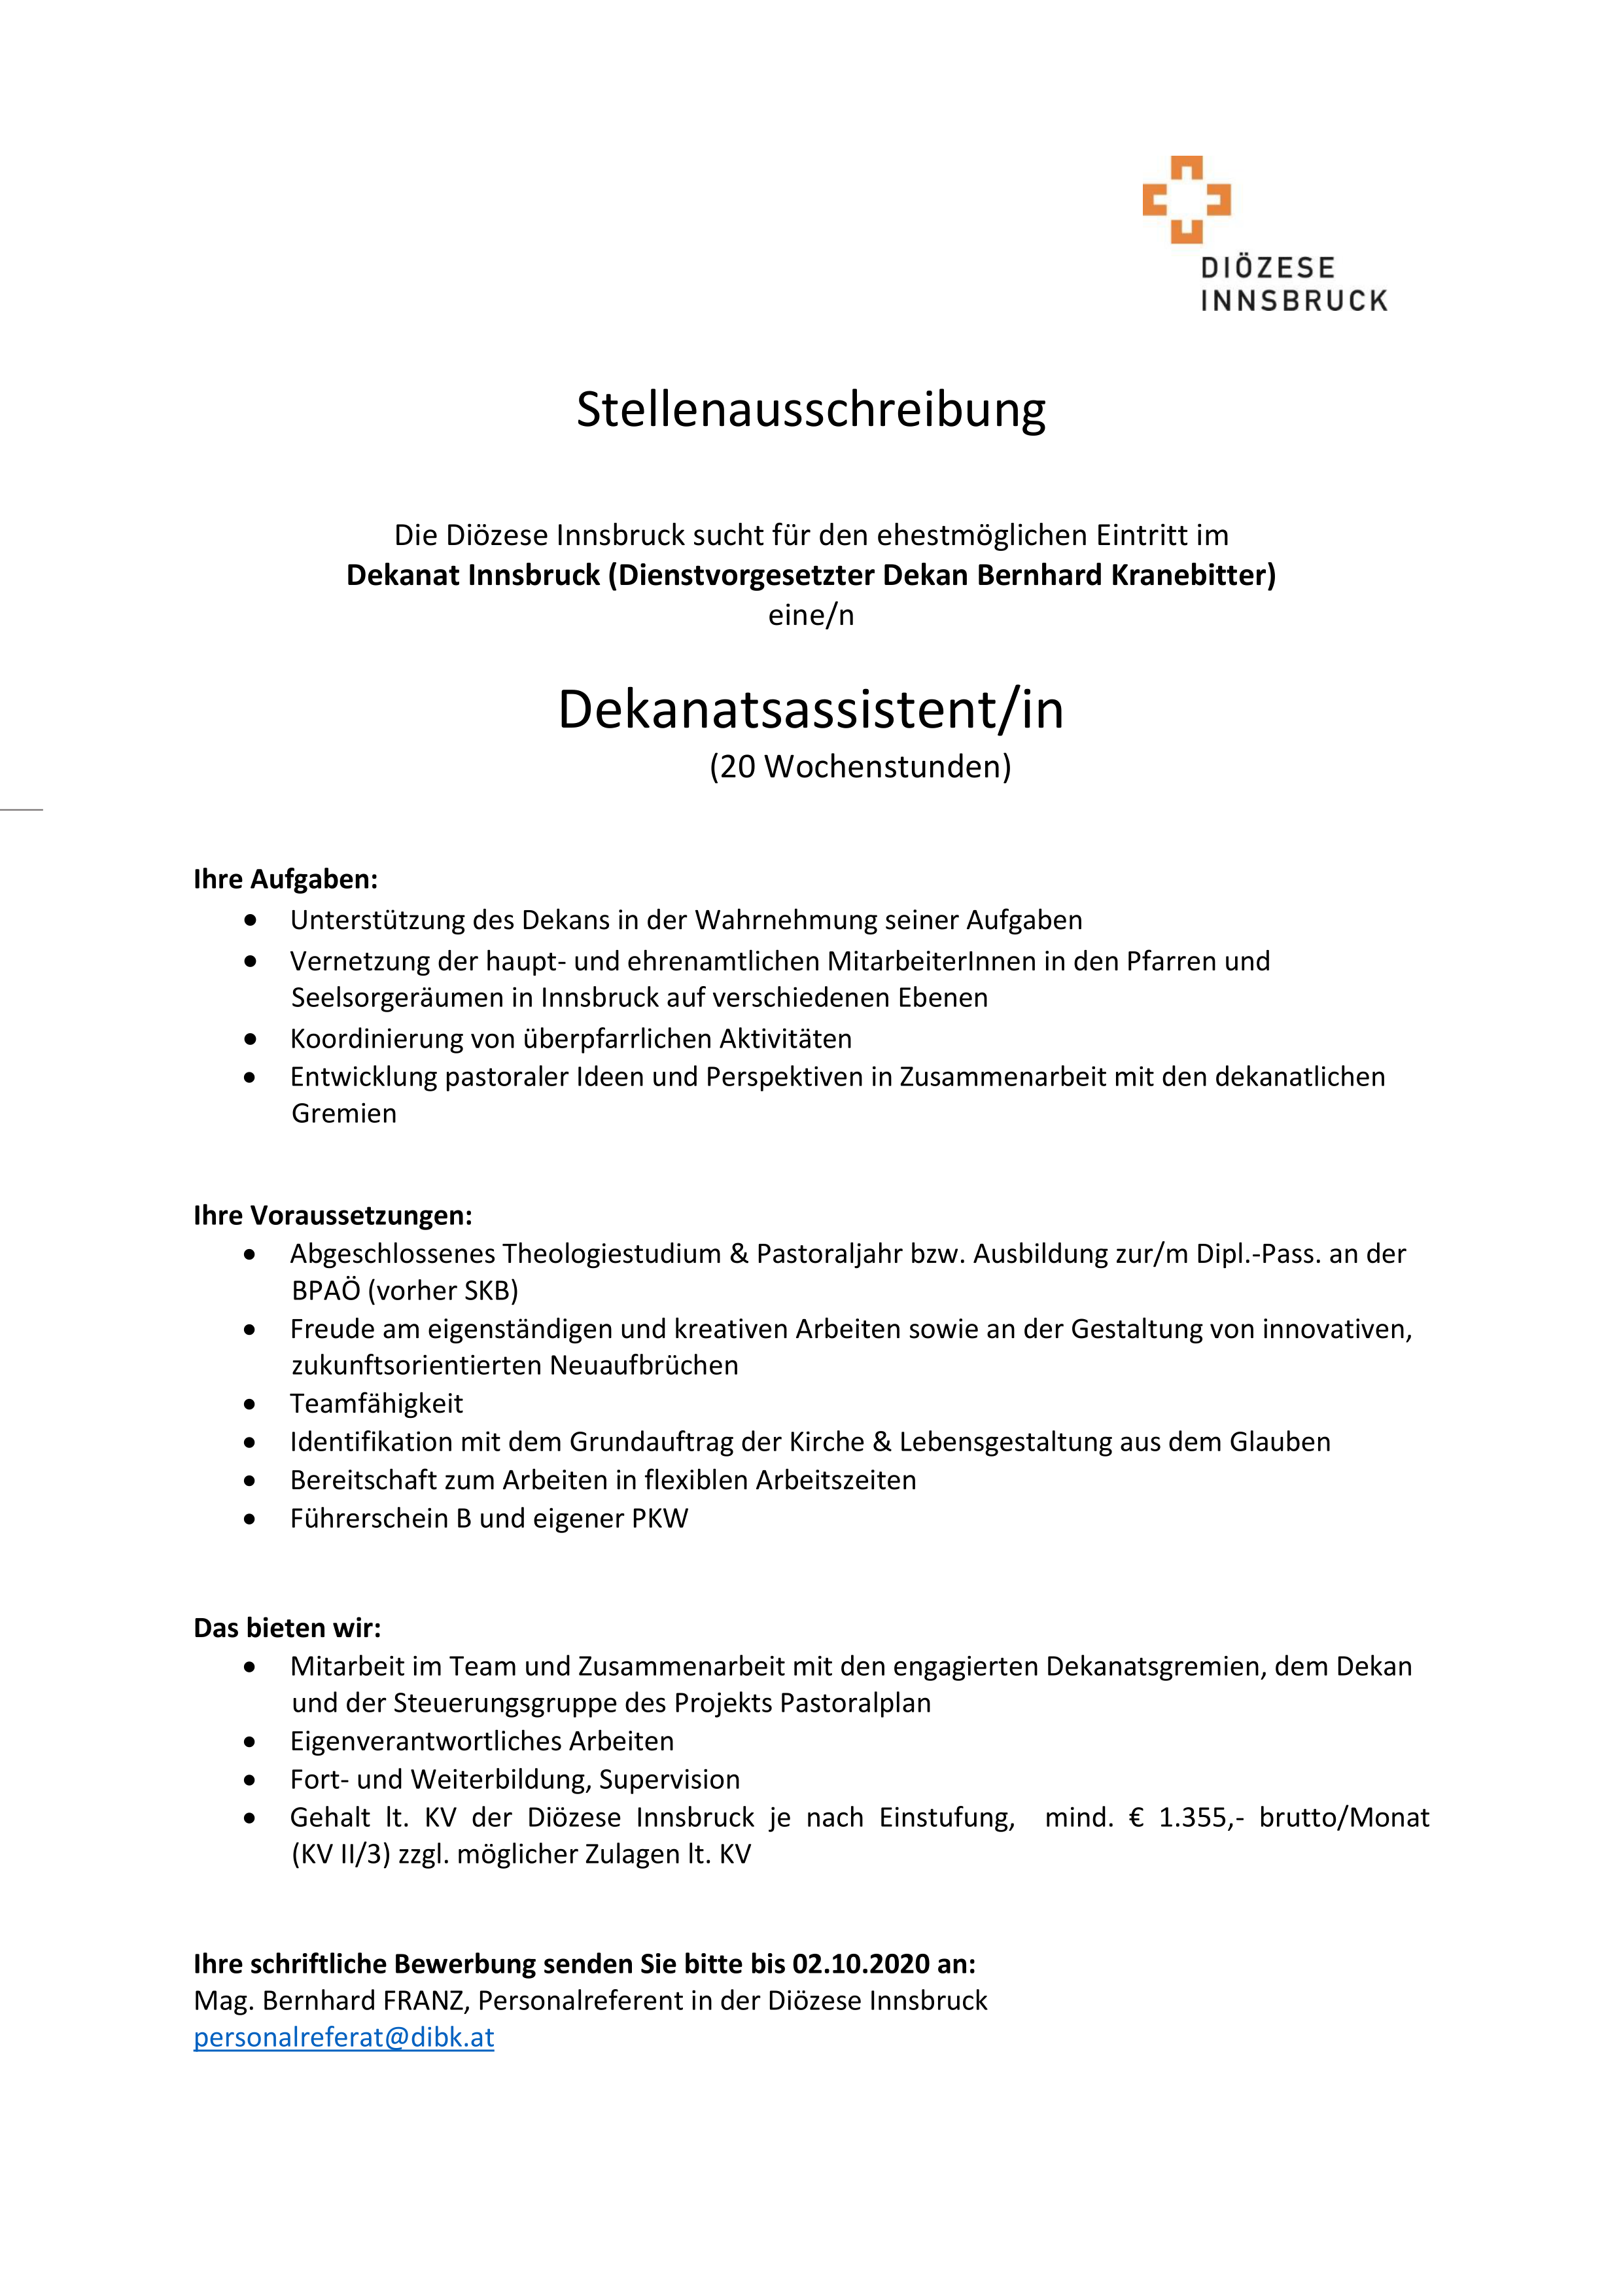 Dekanatsassistent/in